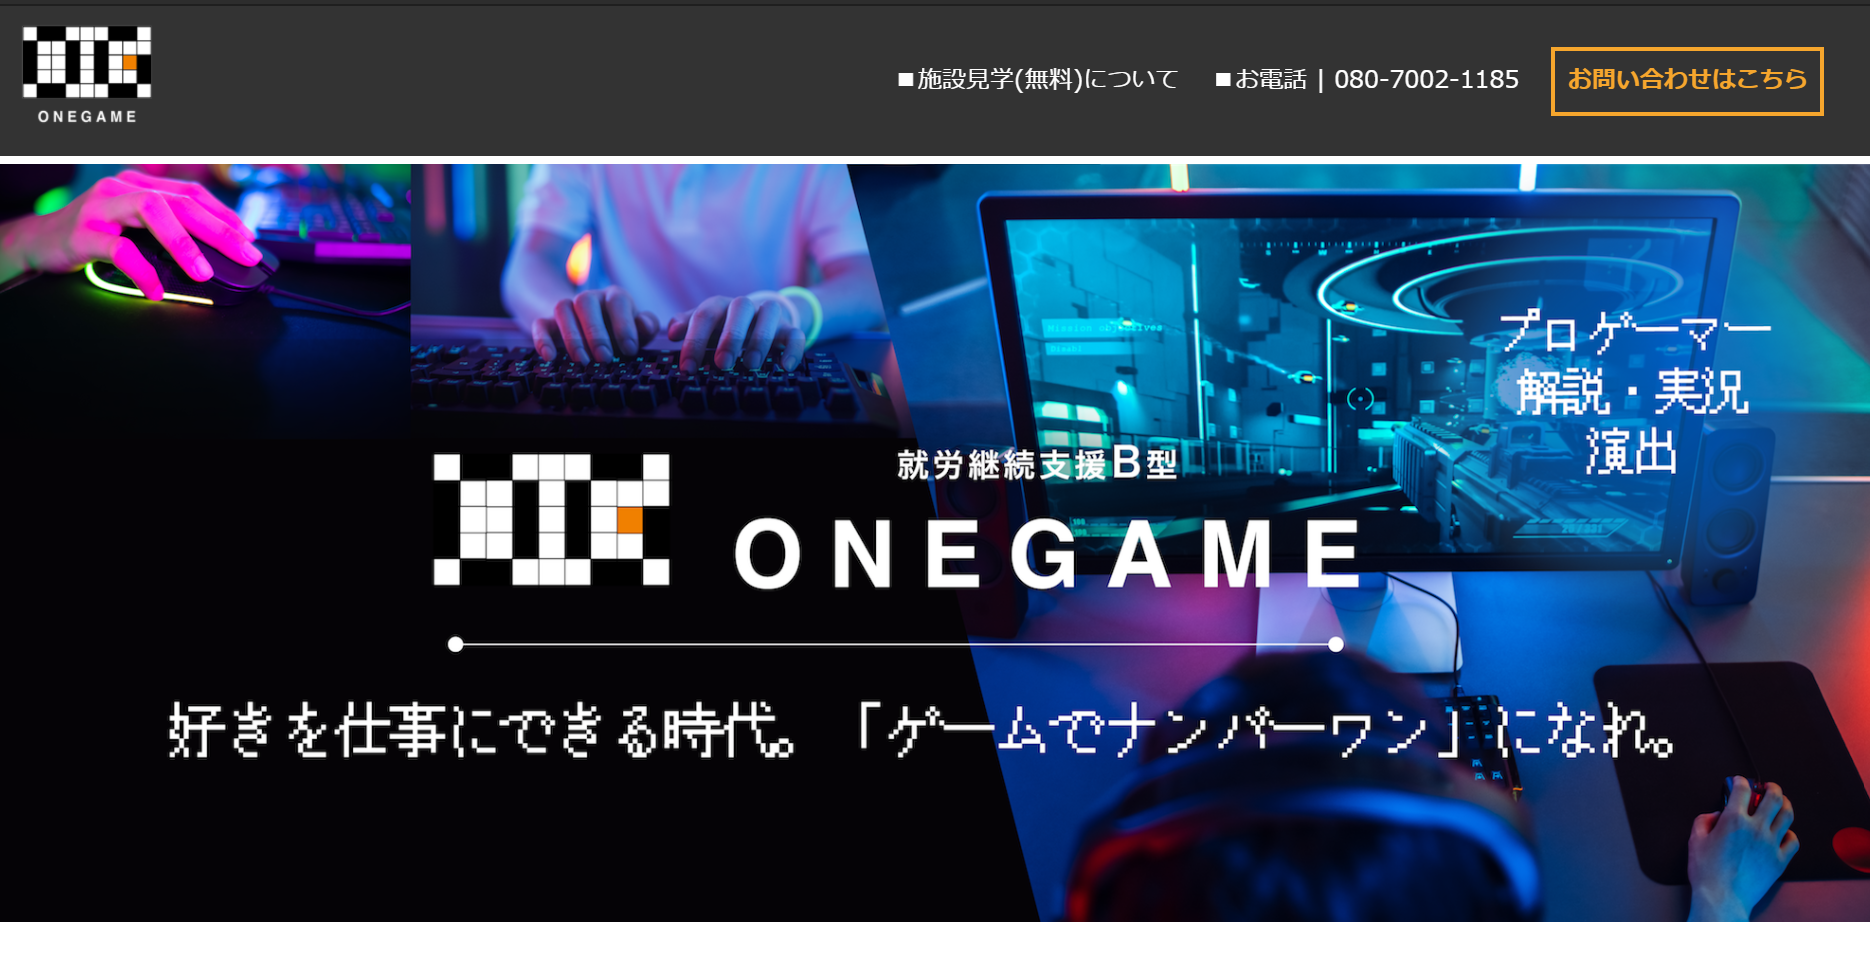 ONEGAME HP